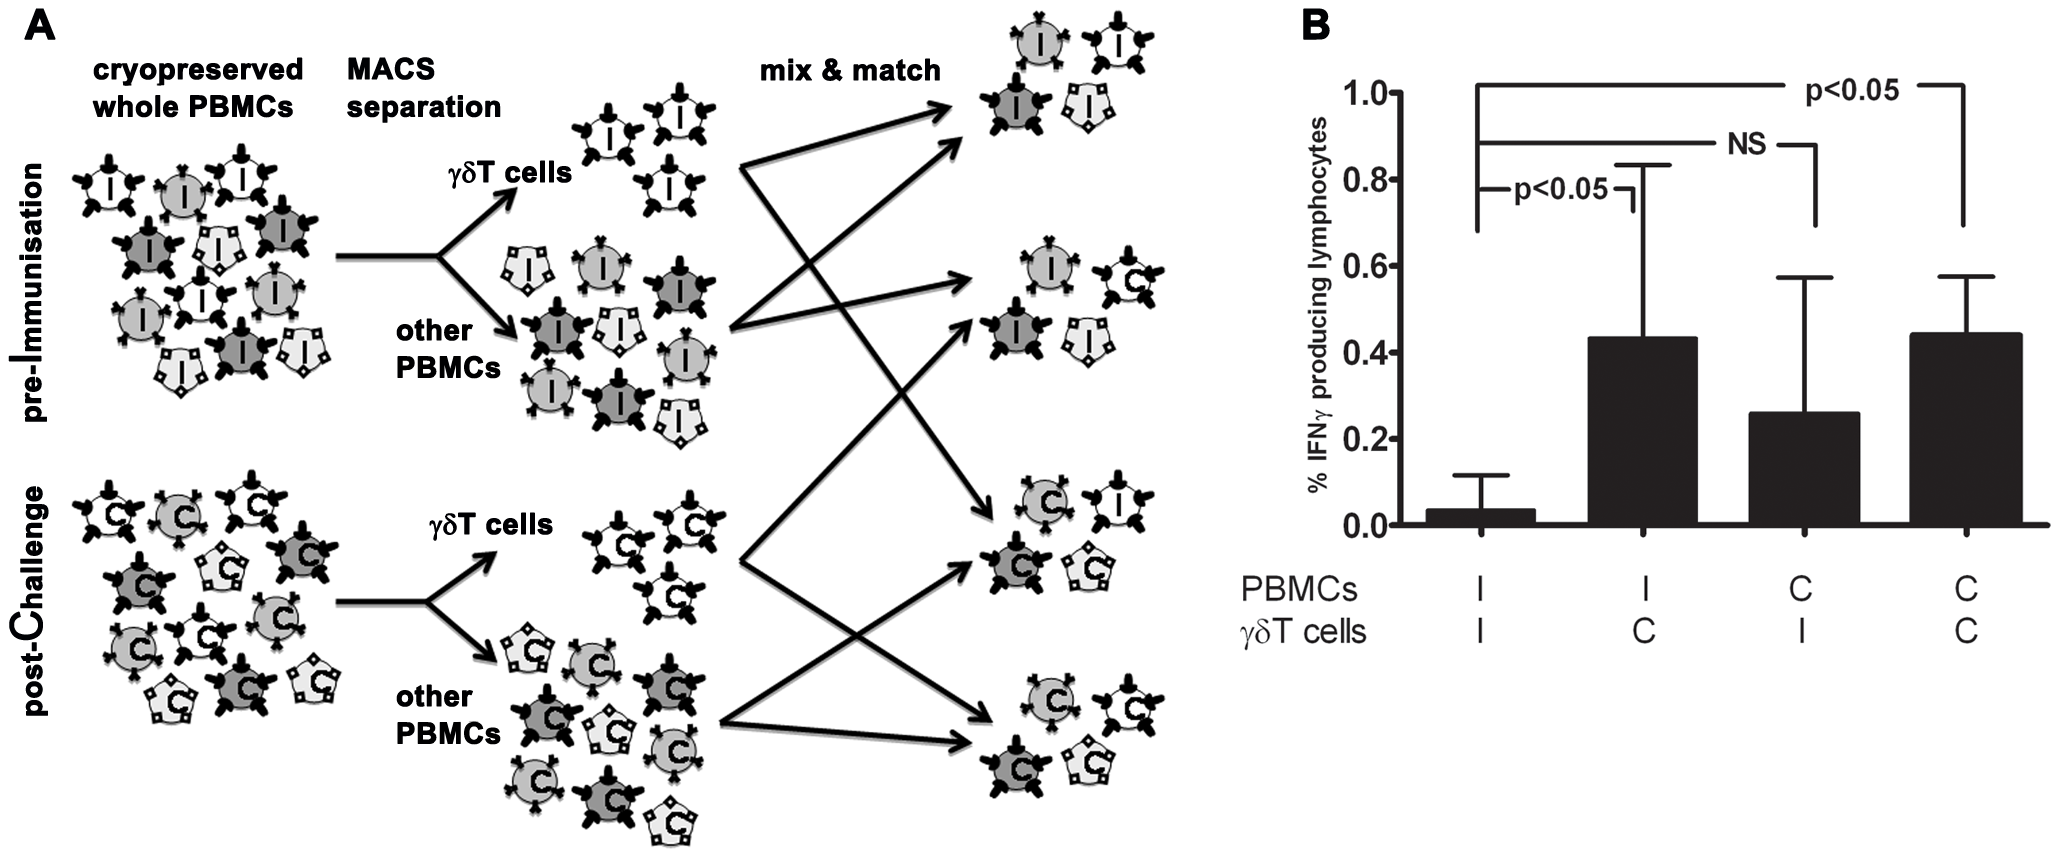 Immunological memory carriage by the γδT compartment vs other PBMC.